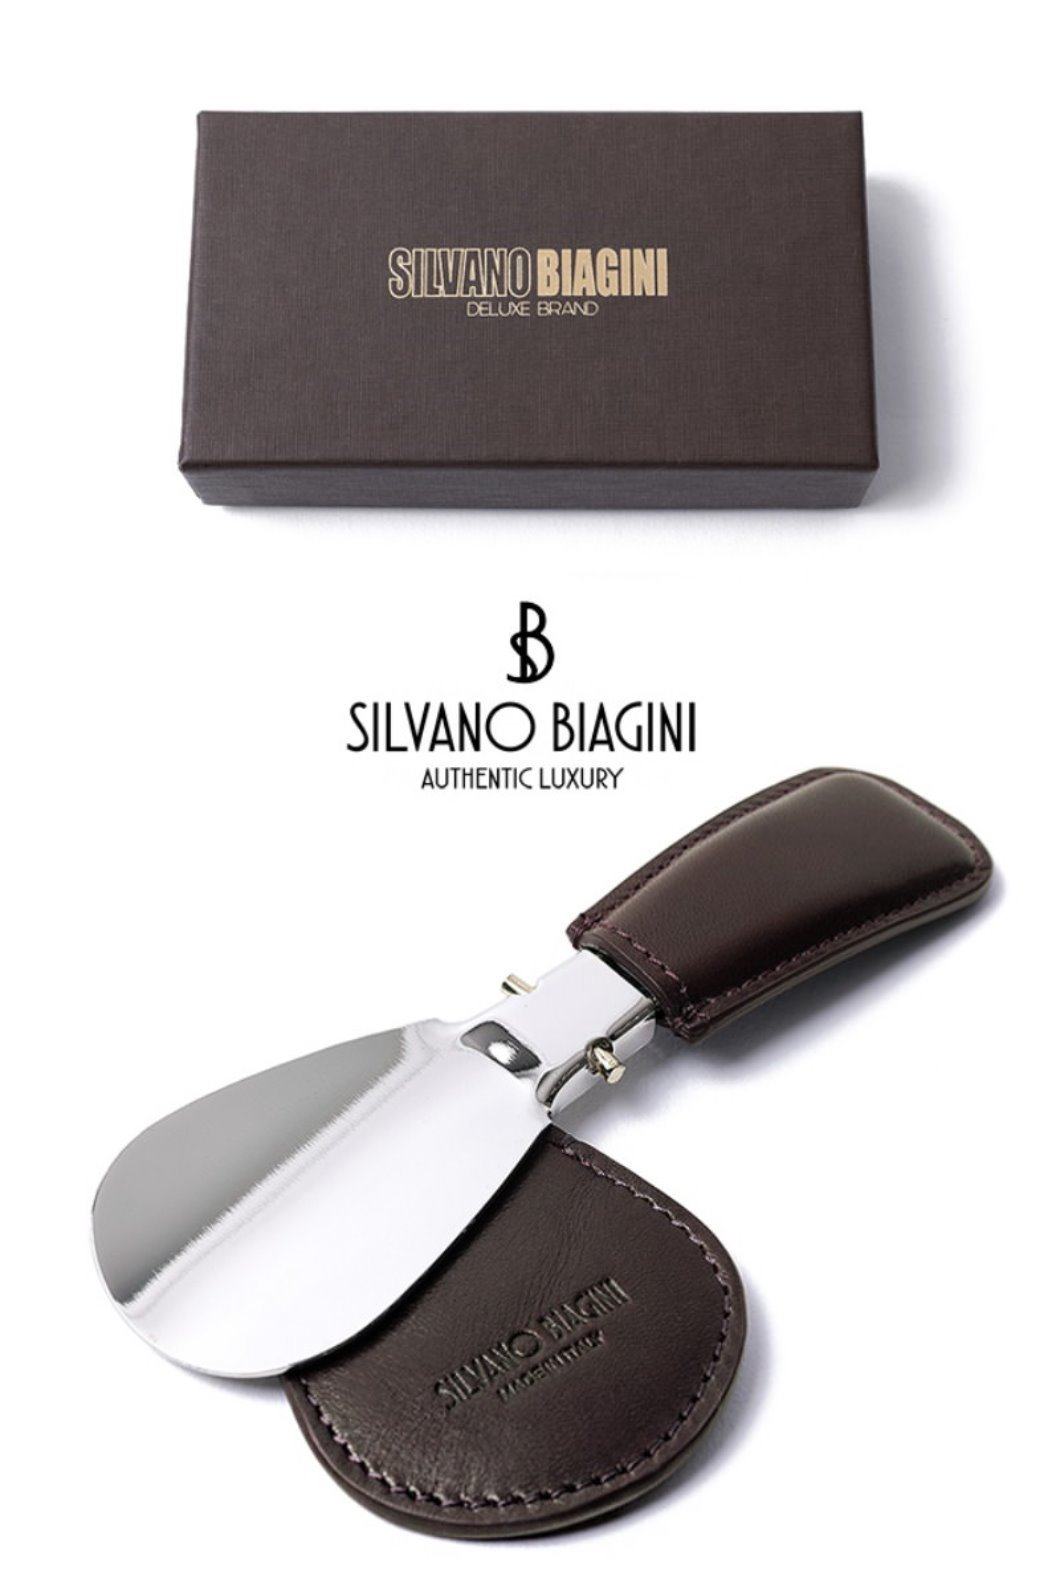 SILVANO BIAGINI SHOE HORN-BROWNSPECIAL ORDER-MADE IN ITALY